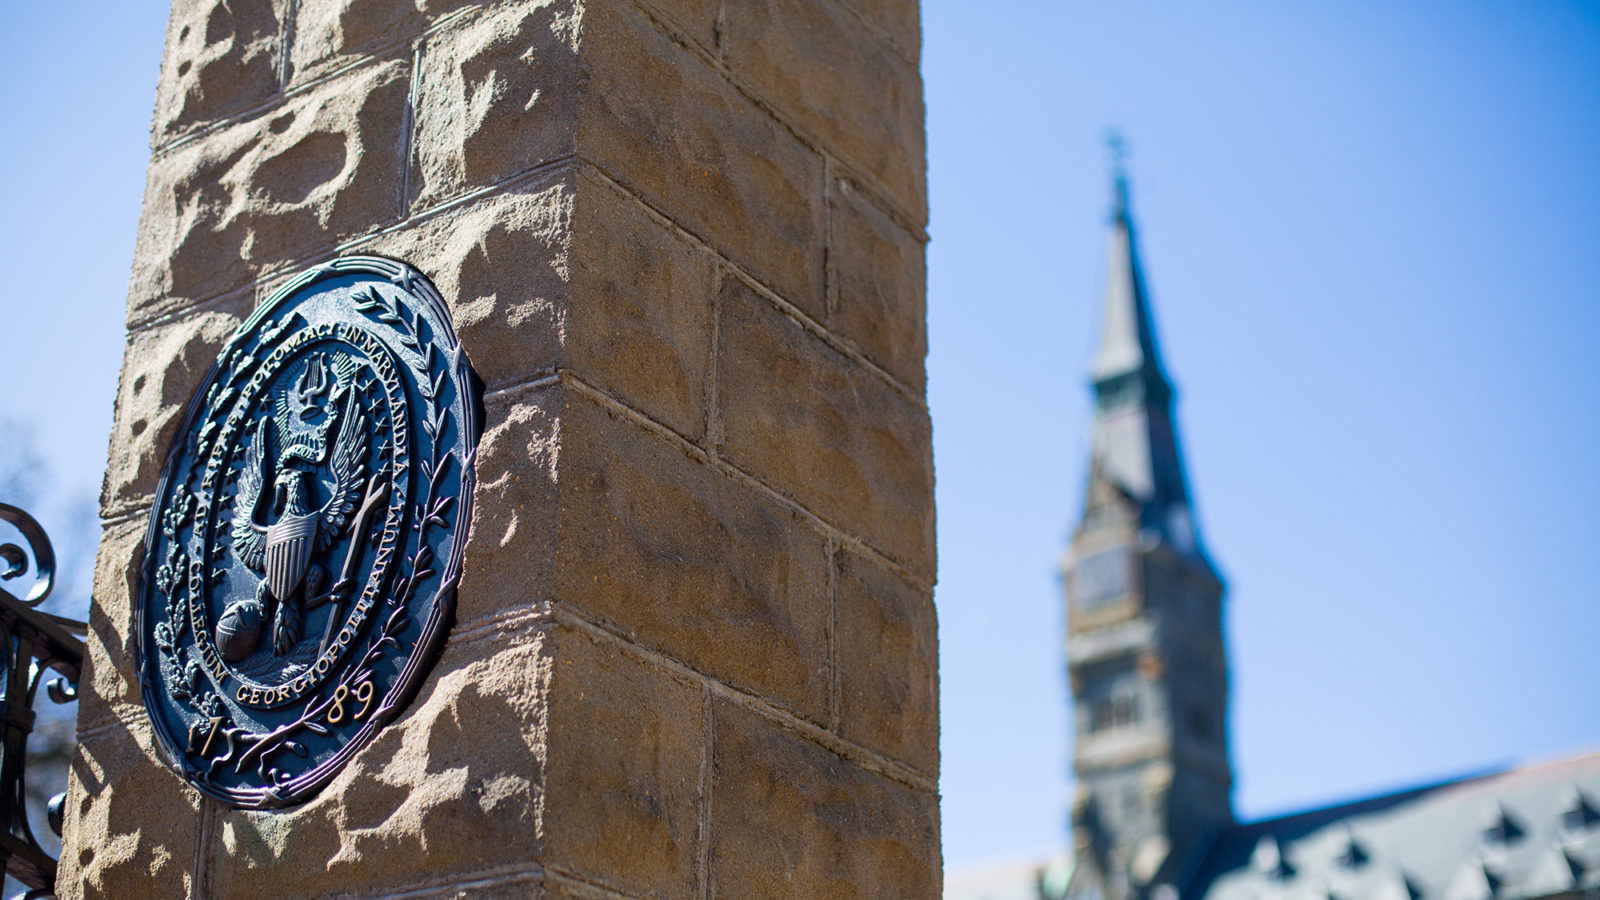 Front gates showing Georgetown seal on stone column with Healy building in the background